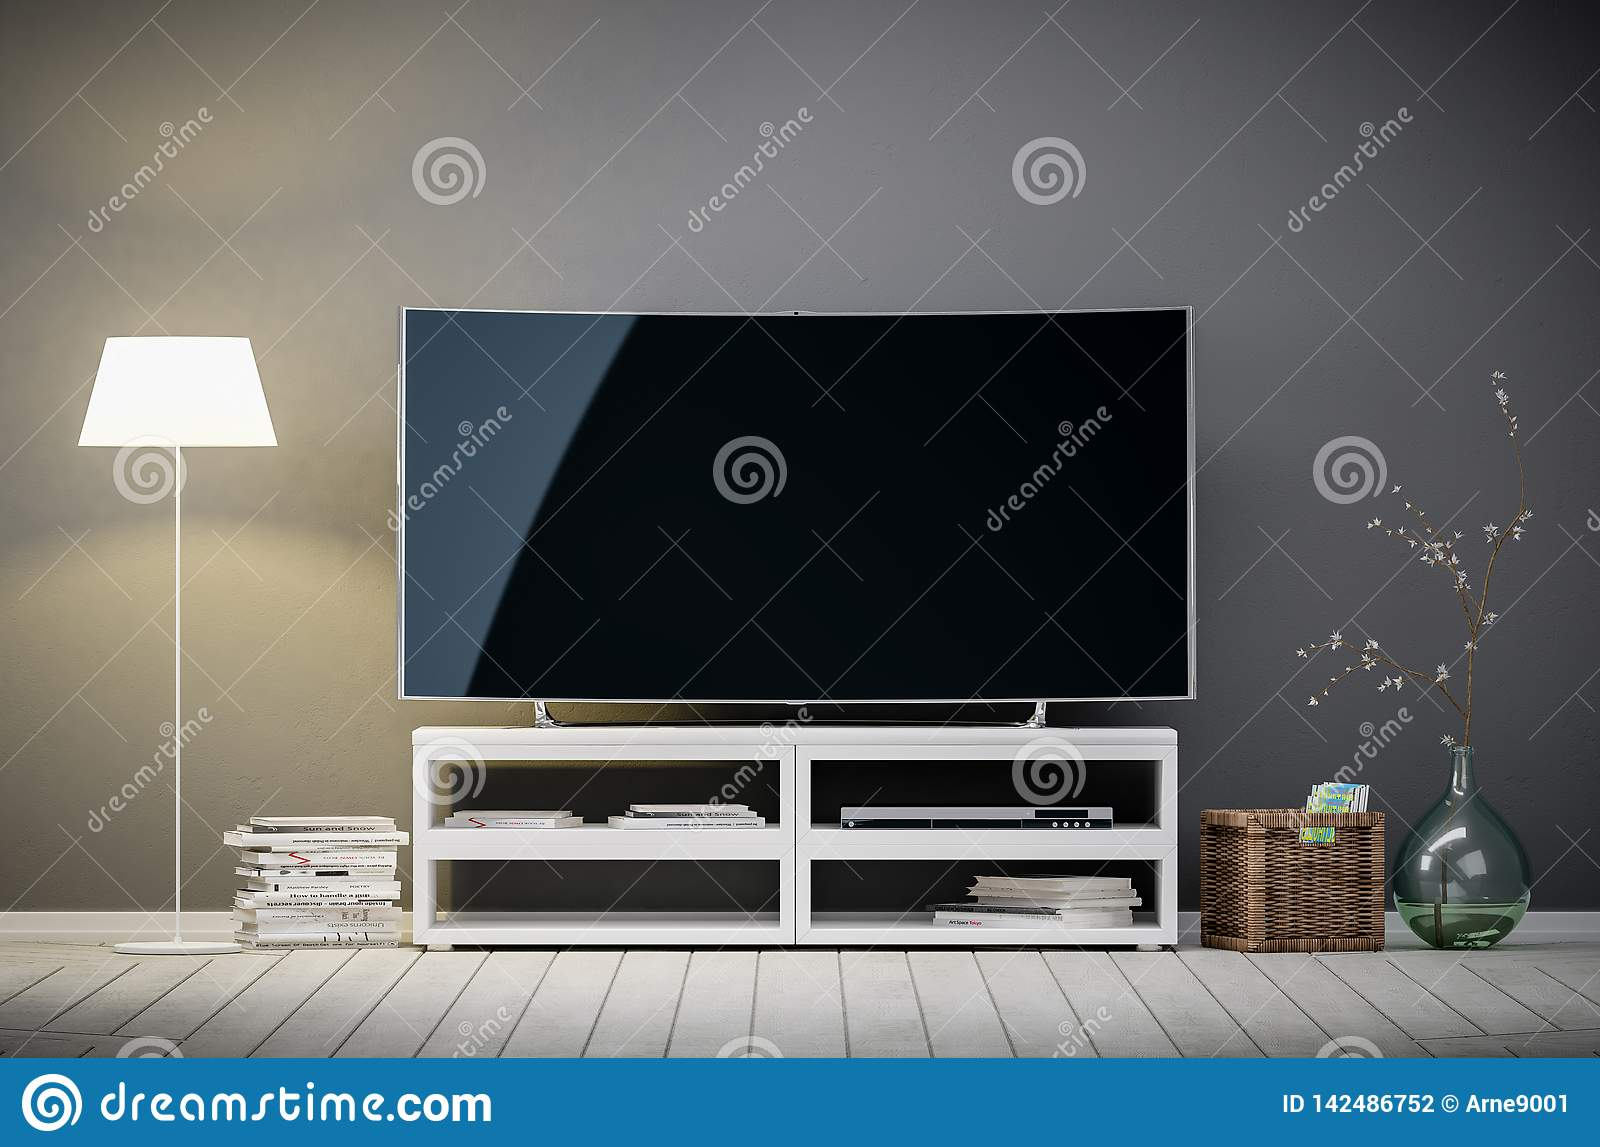 Tv display with blank screen in living room